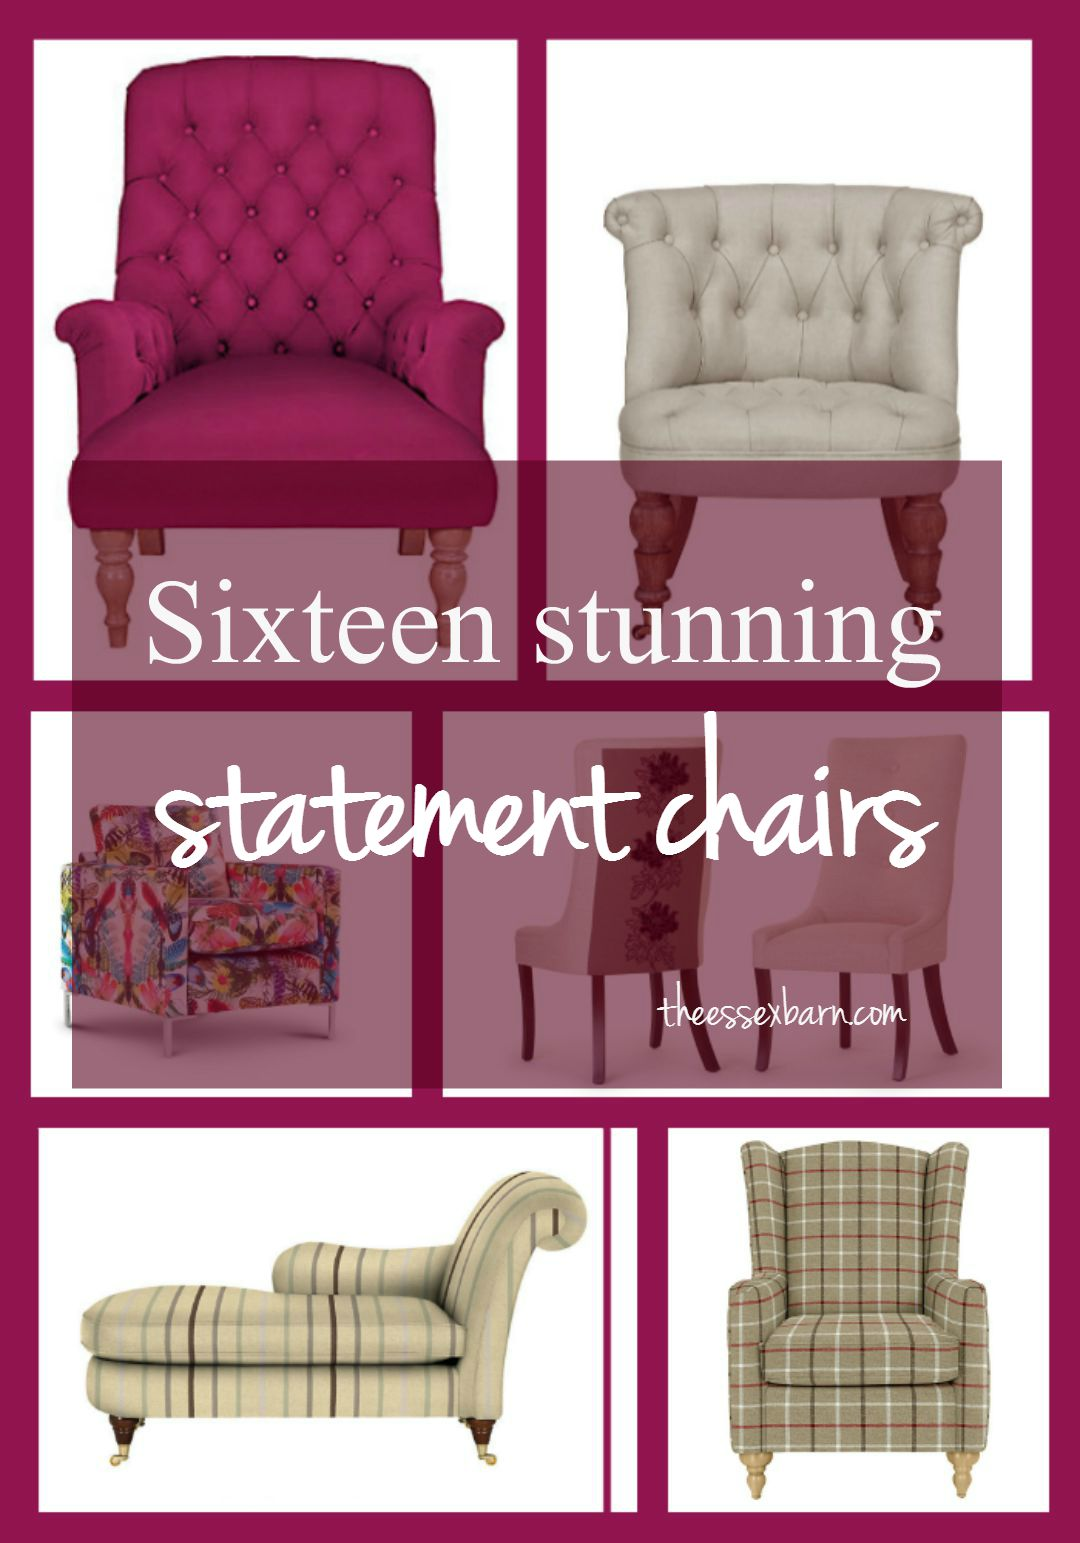 16 stunning statement chairs - TheEssexBarn.com